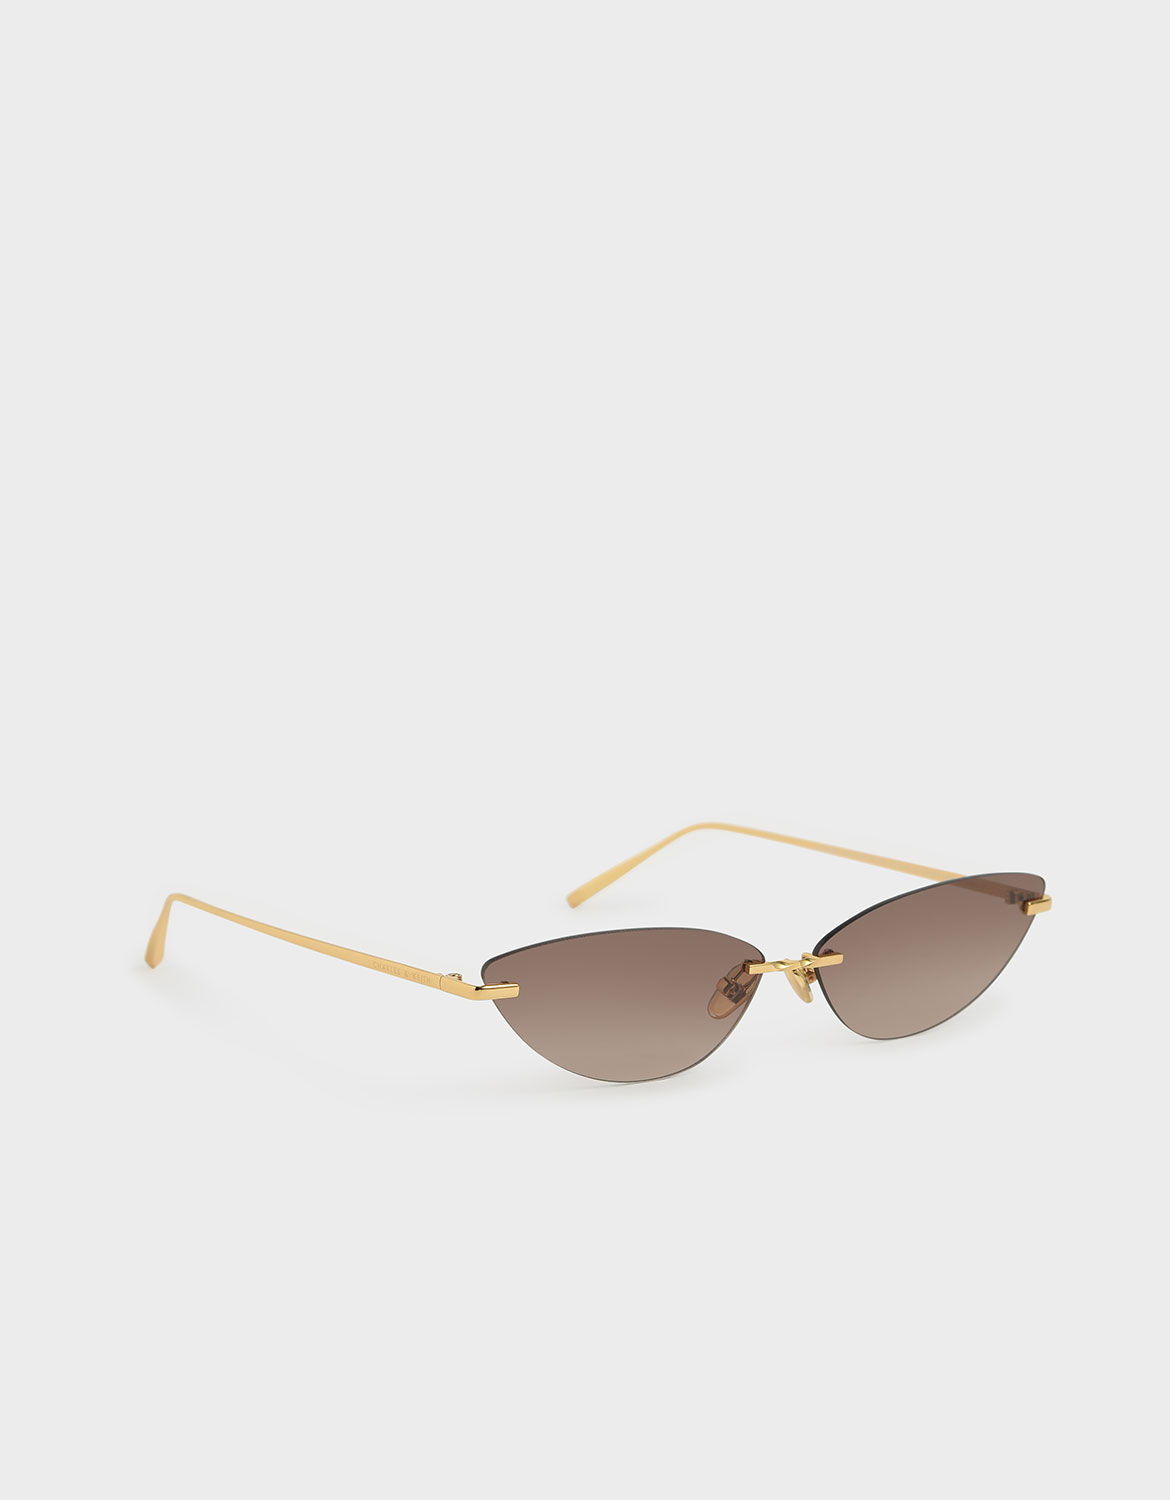 Women's brown rimless cat-eye sunglasses – CHARLES & KEITH